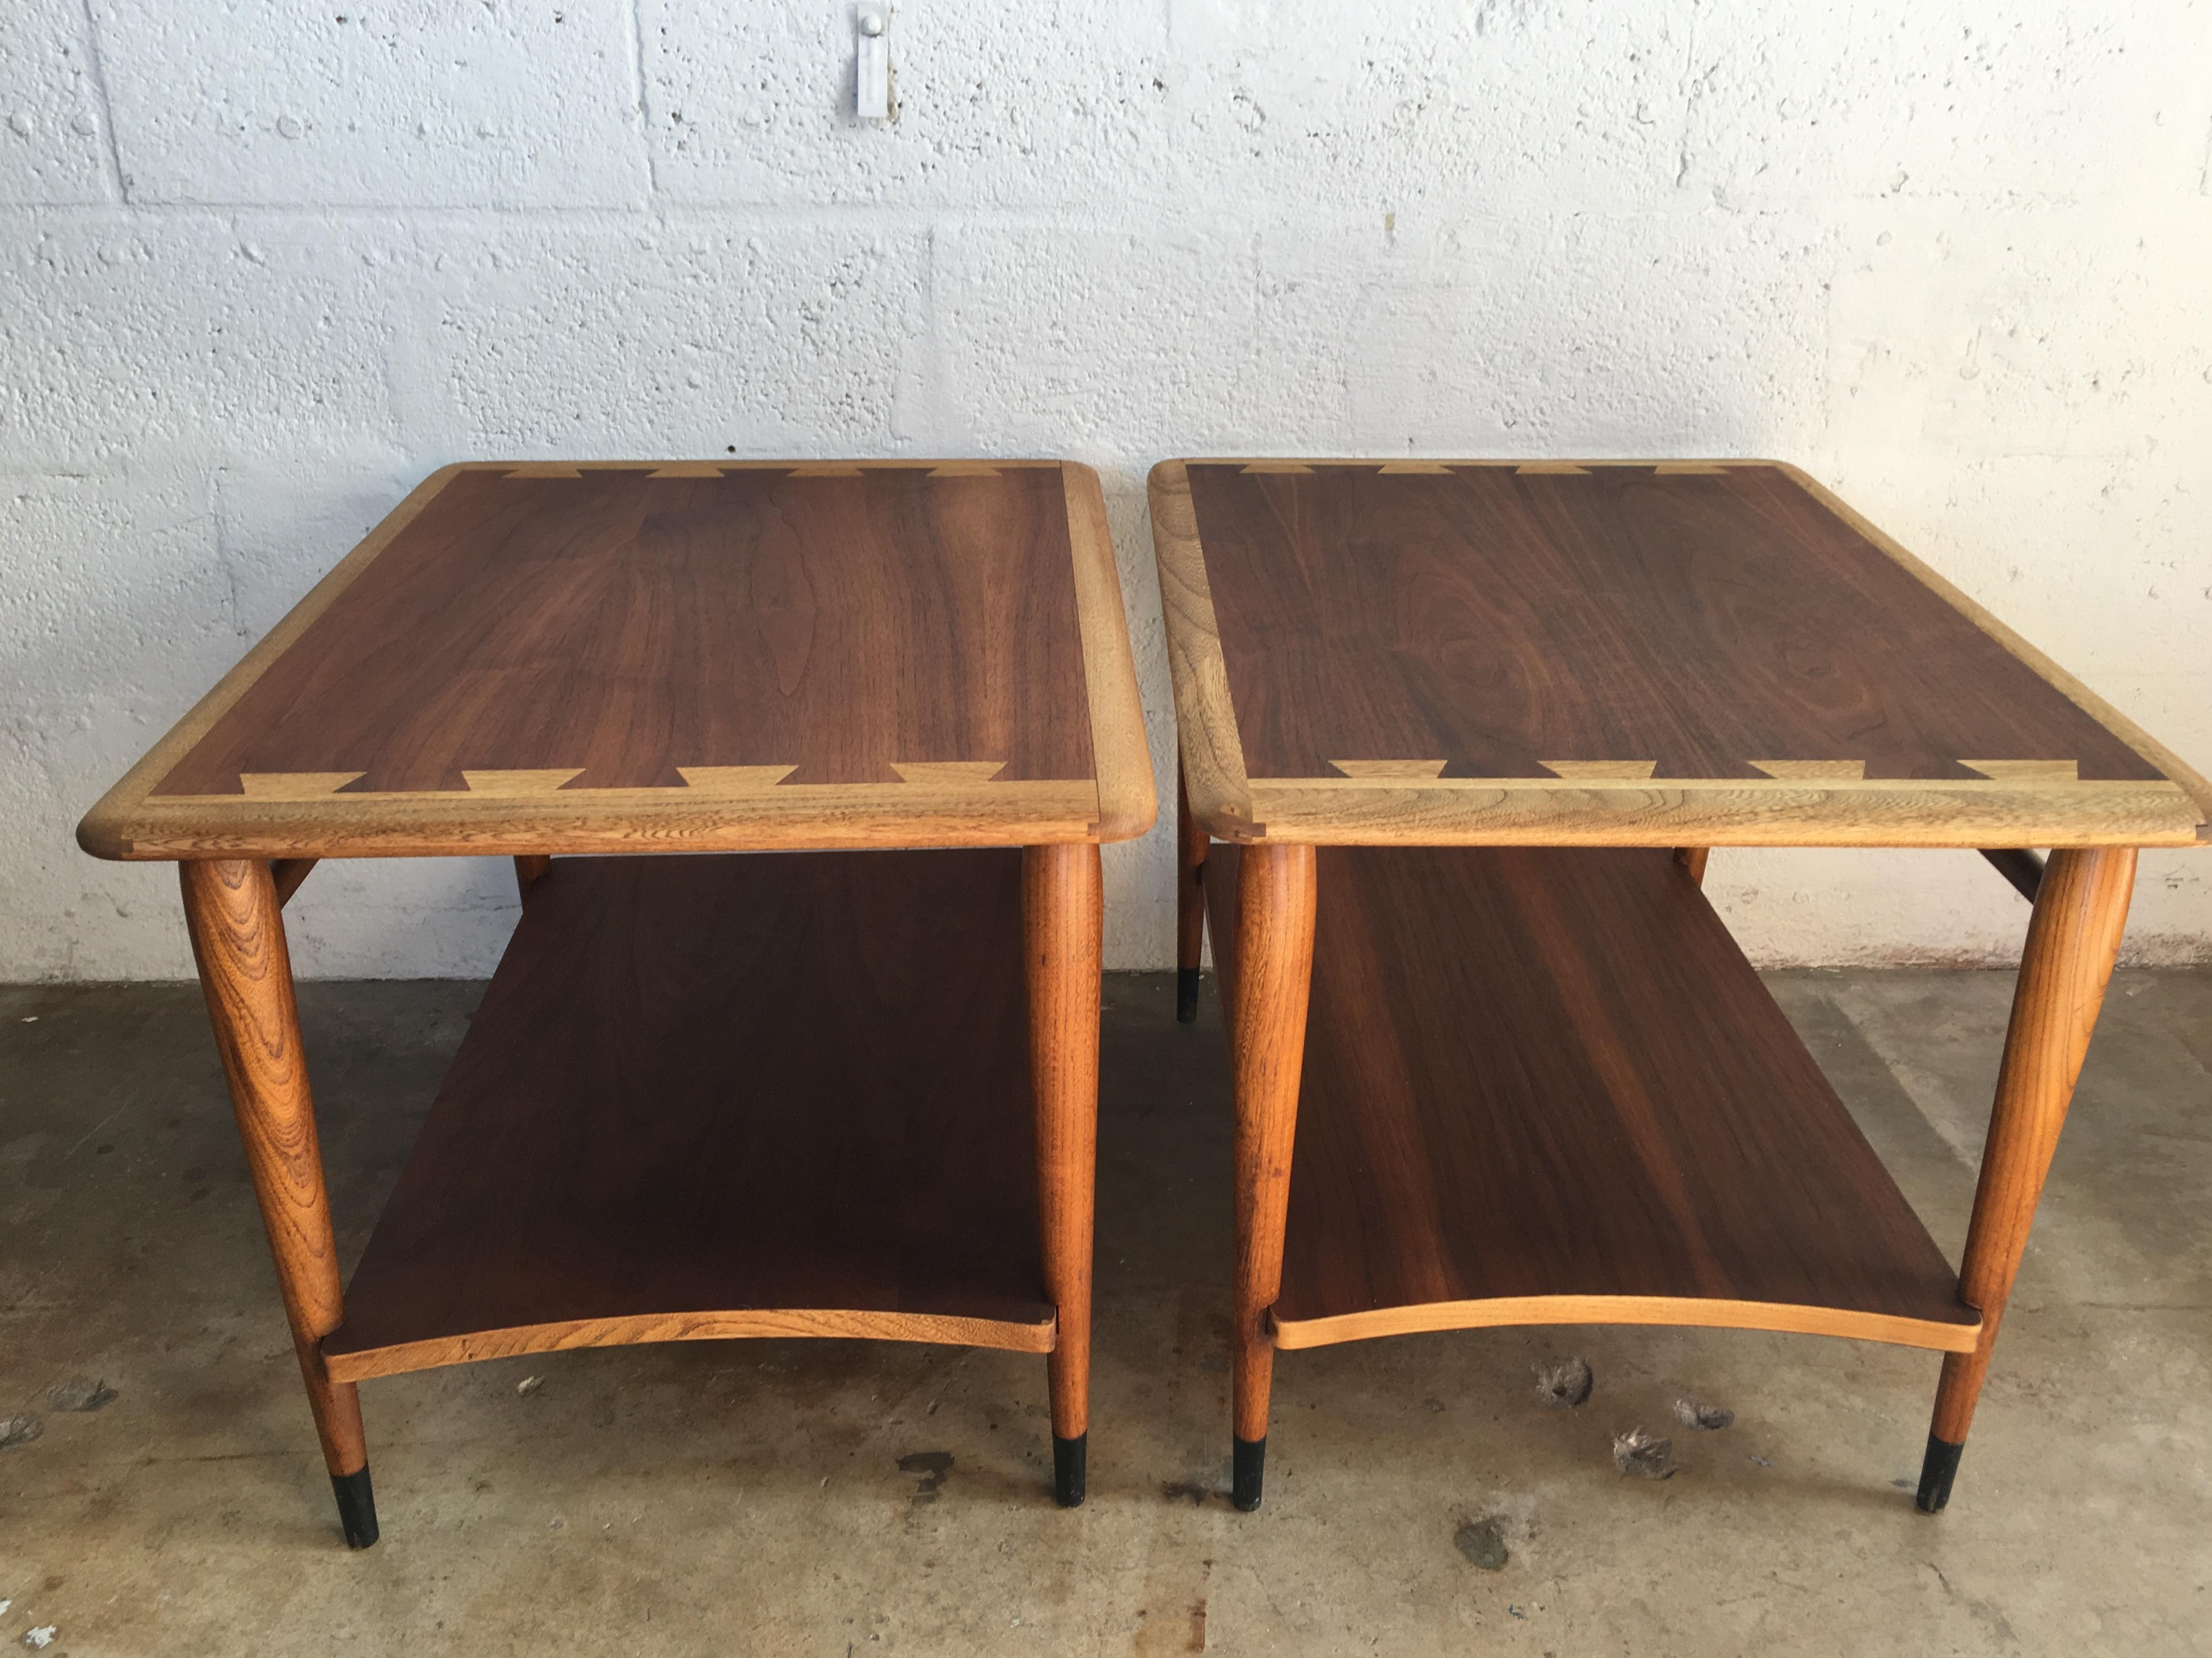 Vintage Mid Century Modern Side Tables By Lane (A Pair)   Image 2 Of